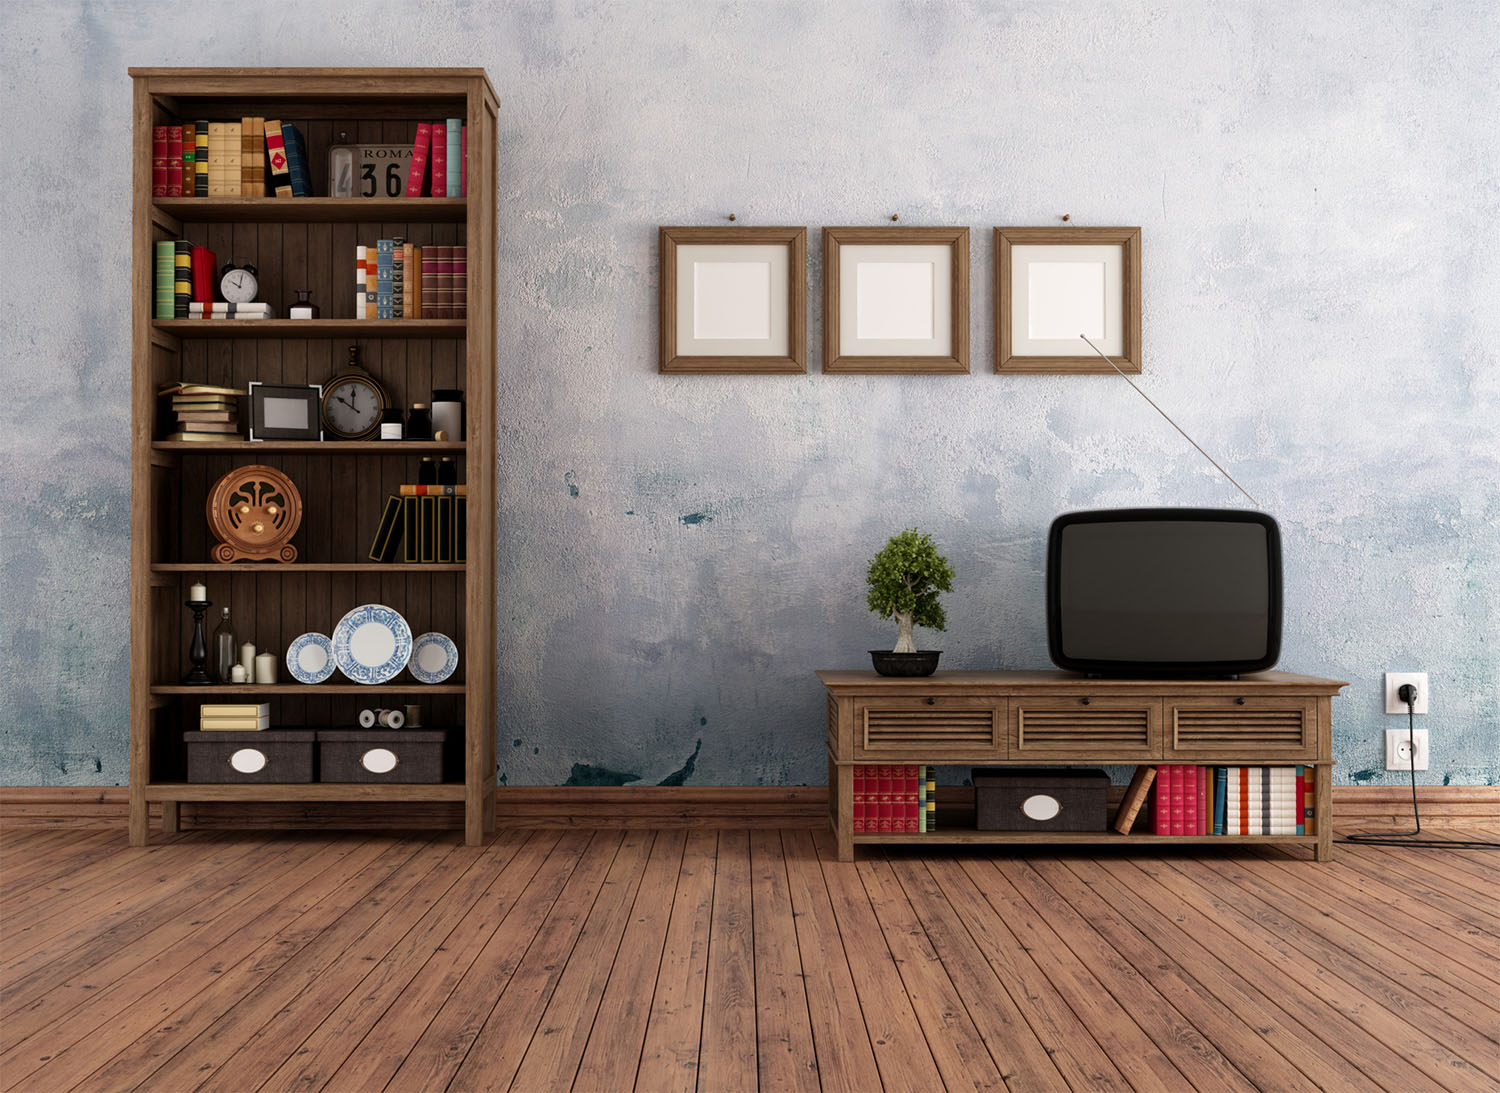 A Vintage Living Room With Bookshelf Made From An Old Door